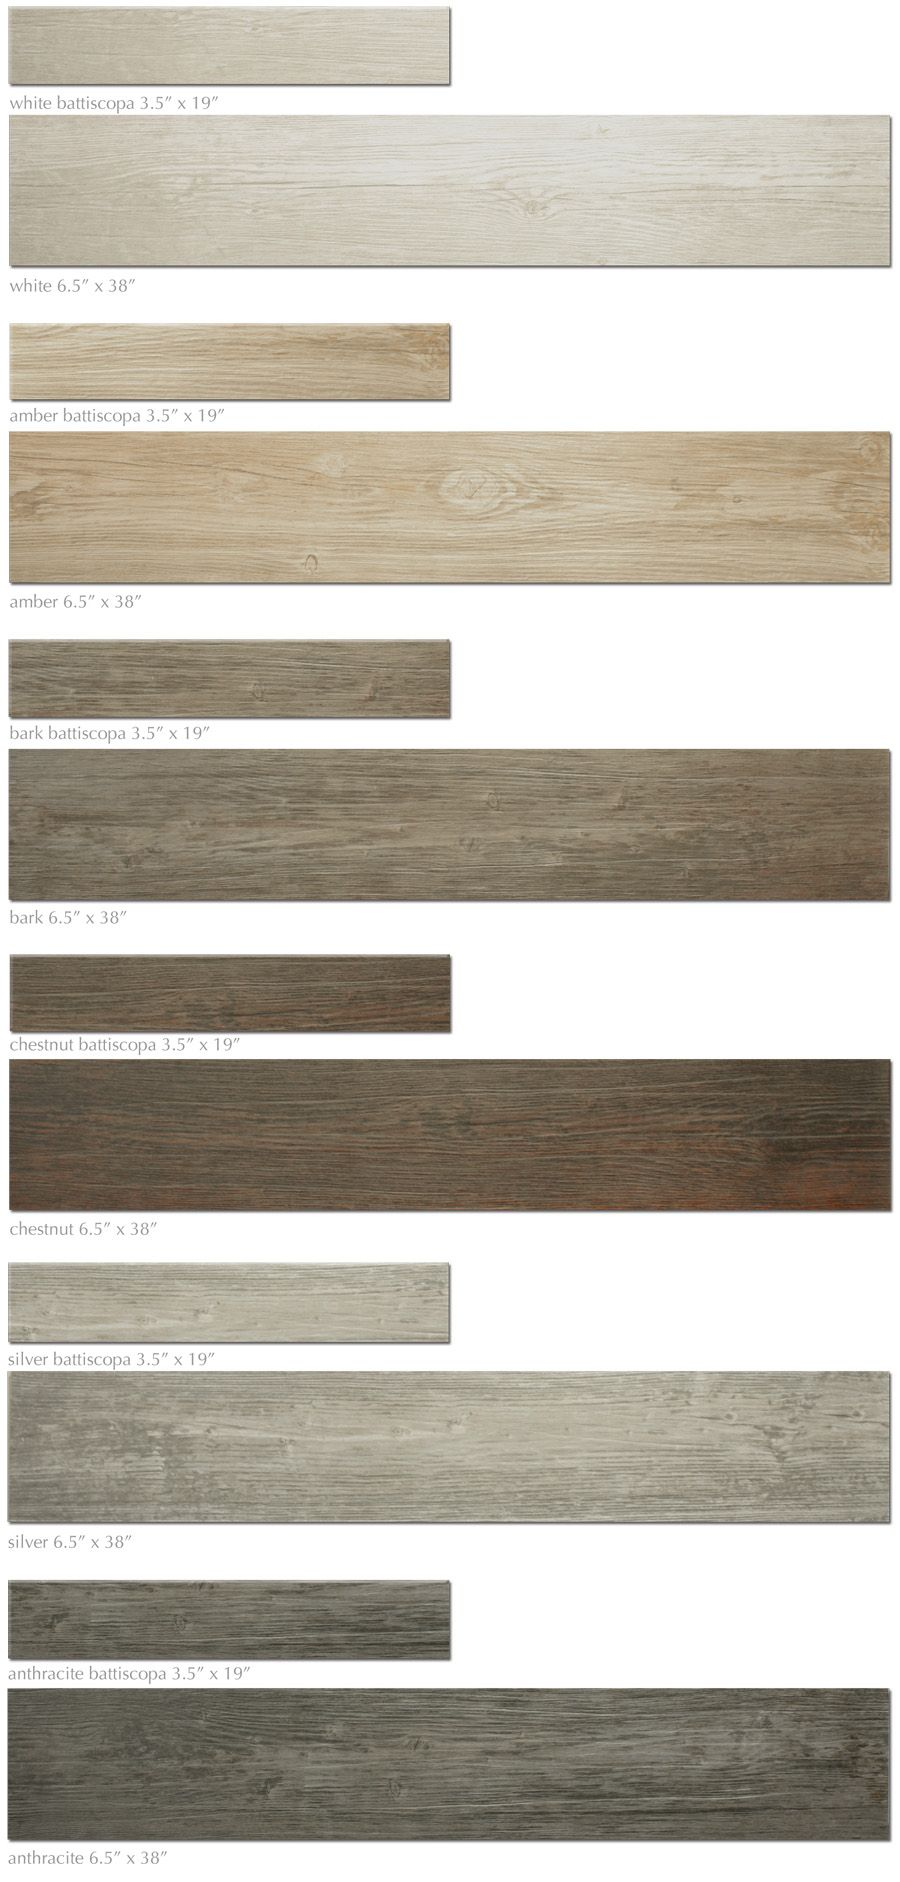 Wood essence pental granite marble a wood look porcelain tile wood essence pental granite marble a wood look porcelain tile makes a great doublecrazyfo Image collections